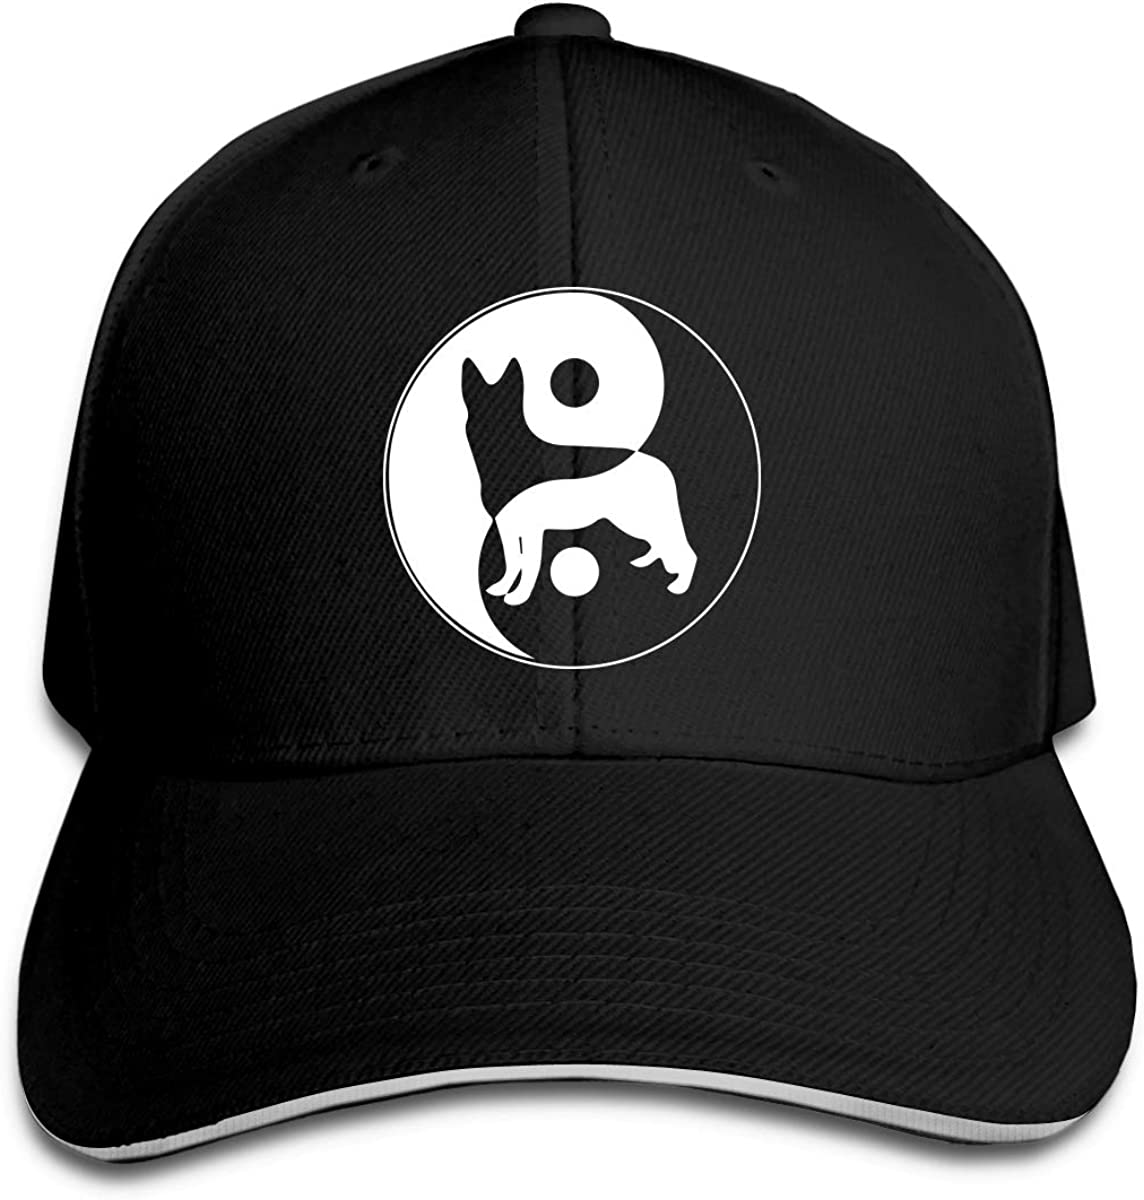 Yin Yang German Shepherd Dog Outdoor Snapback Sandwich Cap Adjustable Baseball Hat Street Rapper Hat